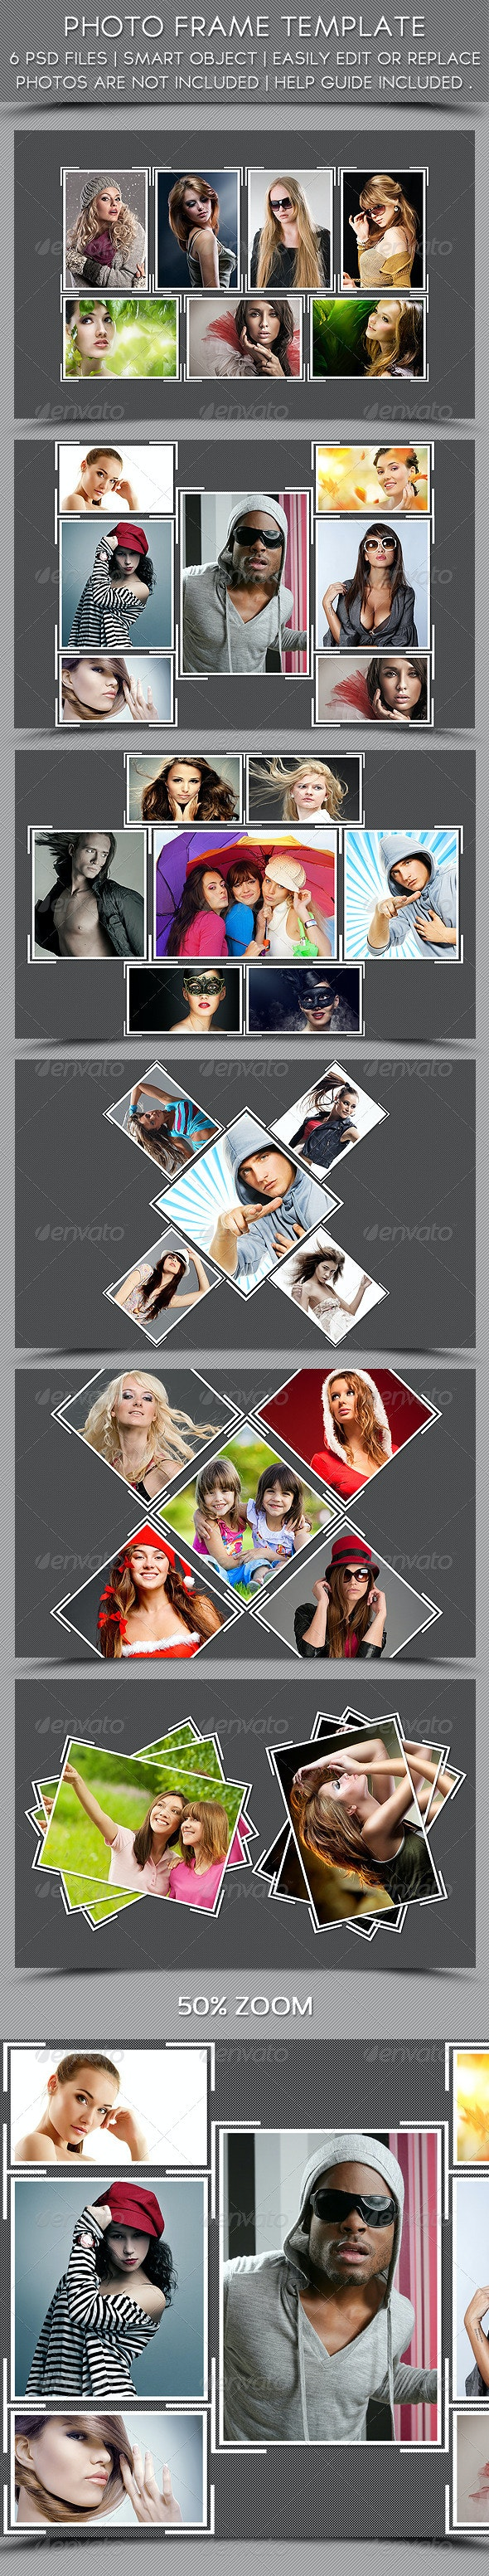 Photo Frame Template - Photo Templates Graphics